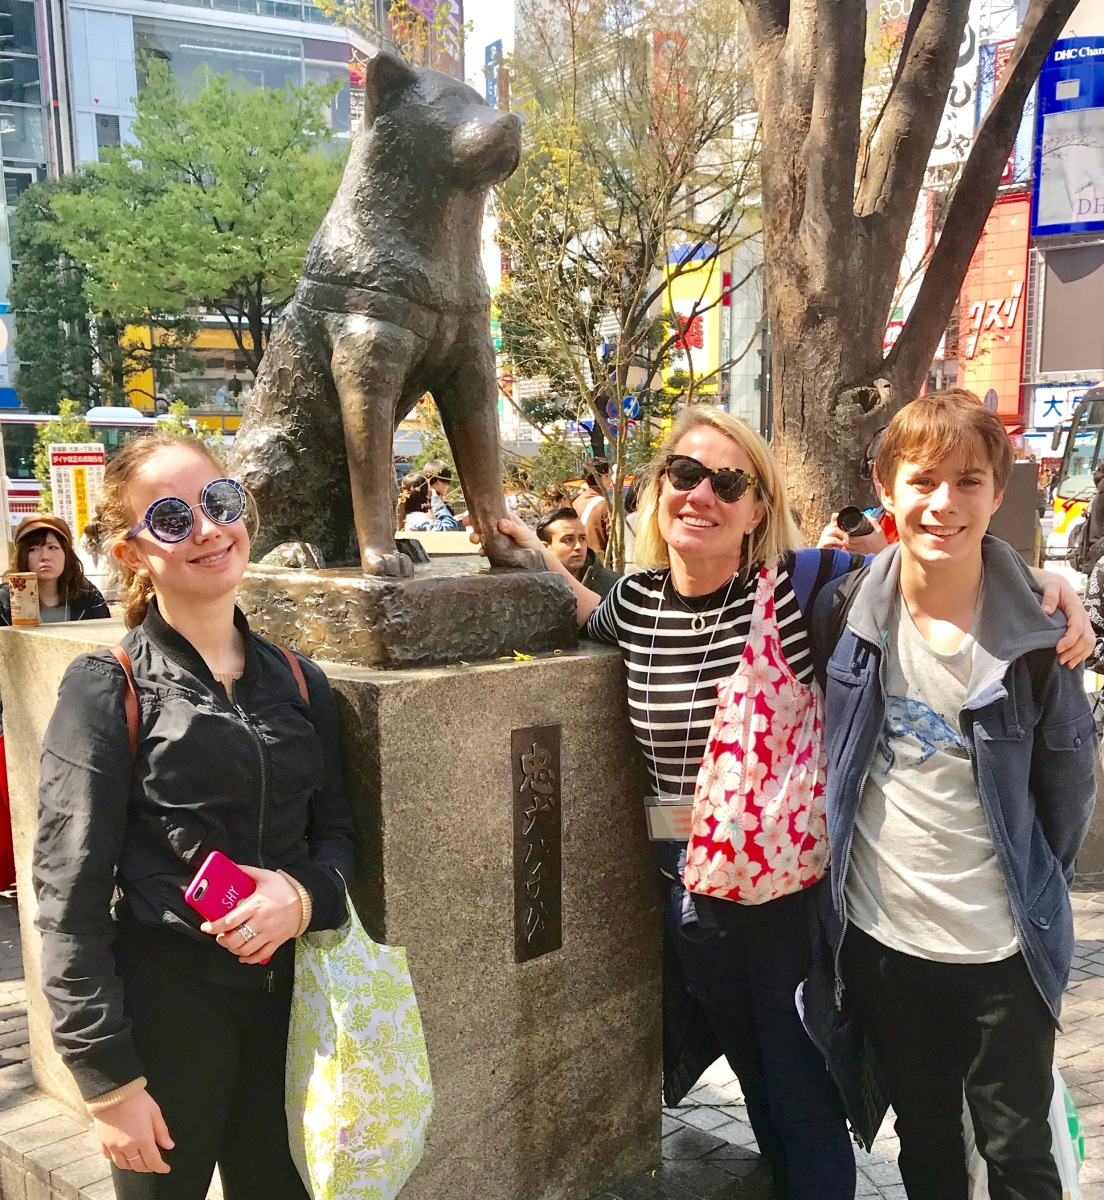 A Traveler's Take on 15 Things to Grab your Group and Do in Tokyo